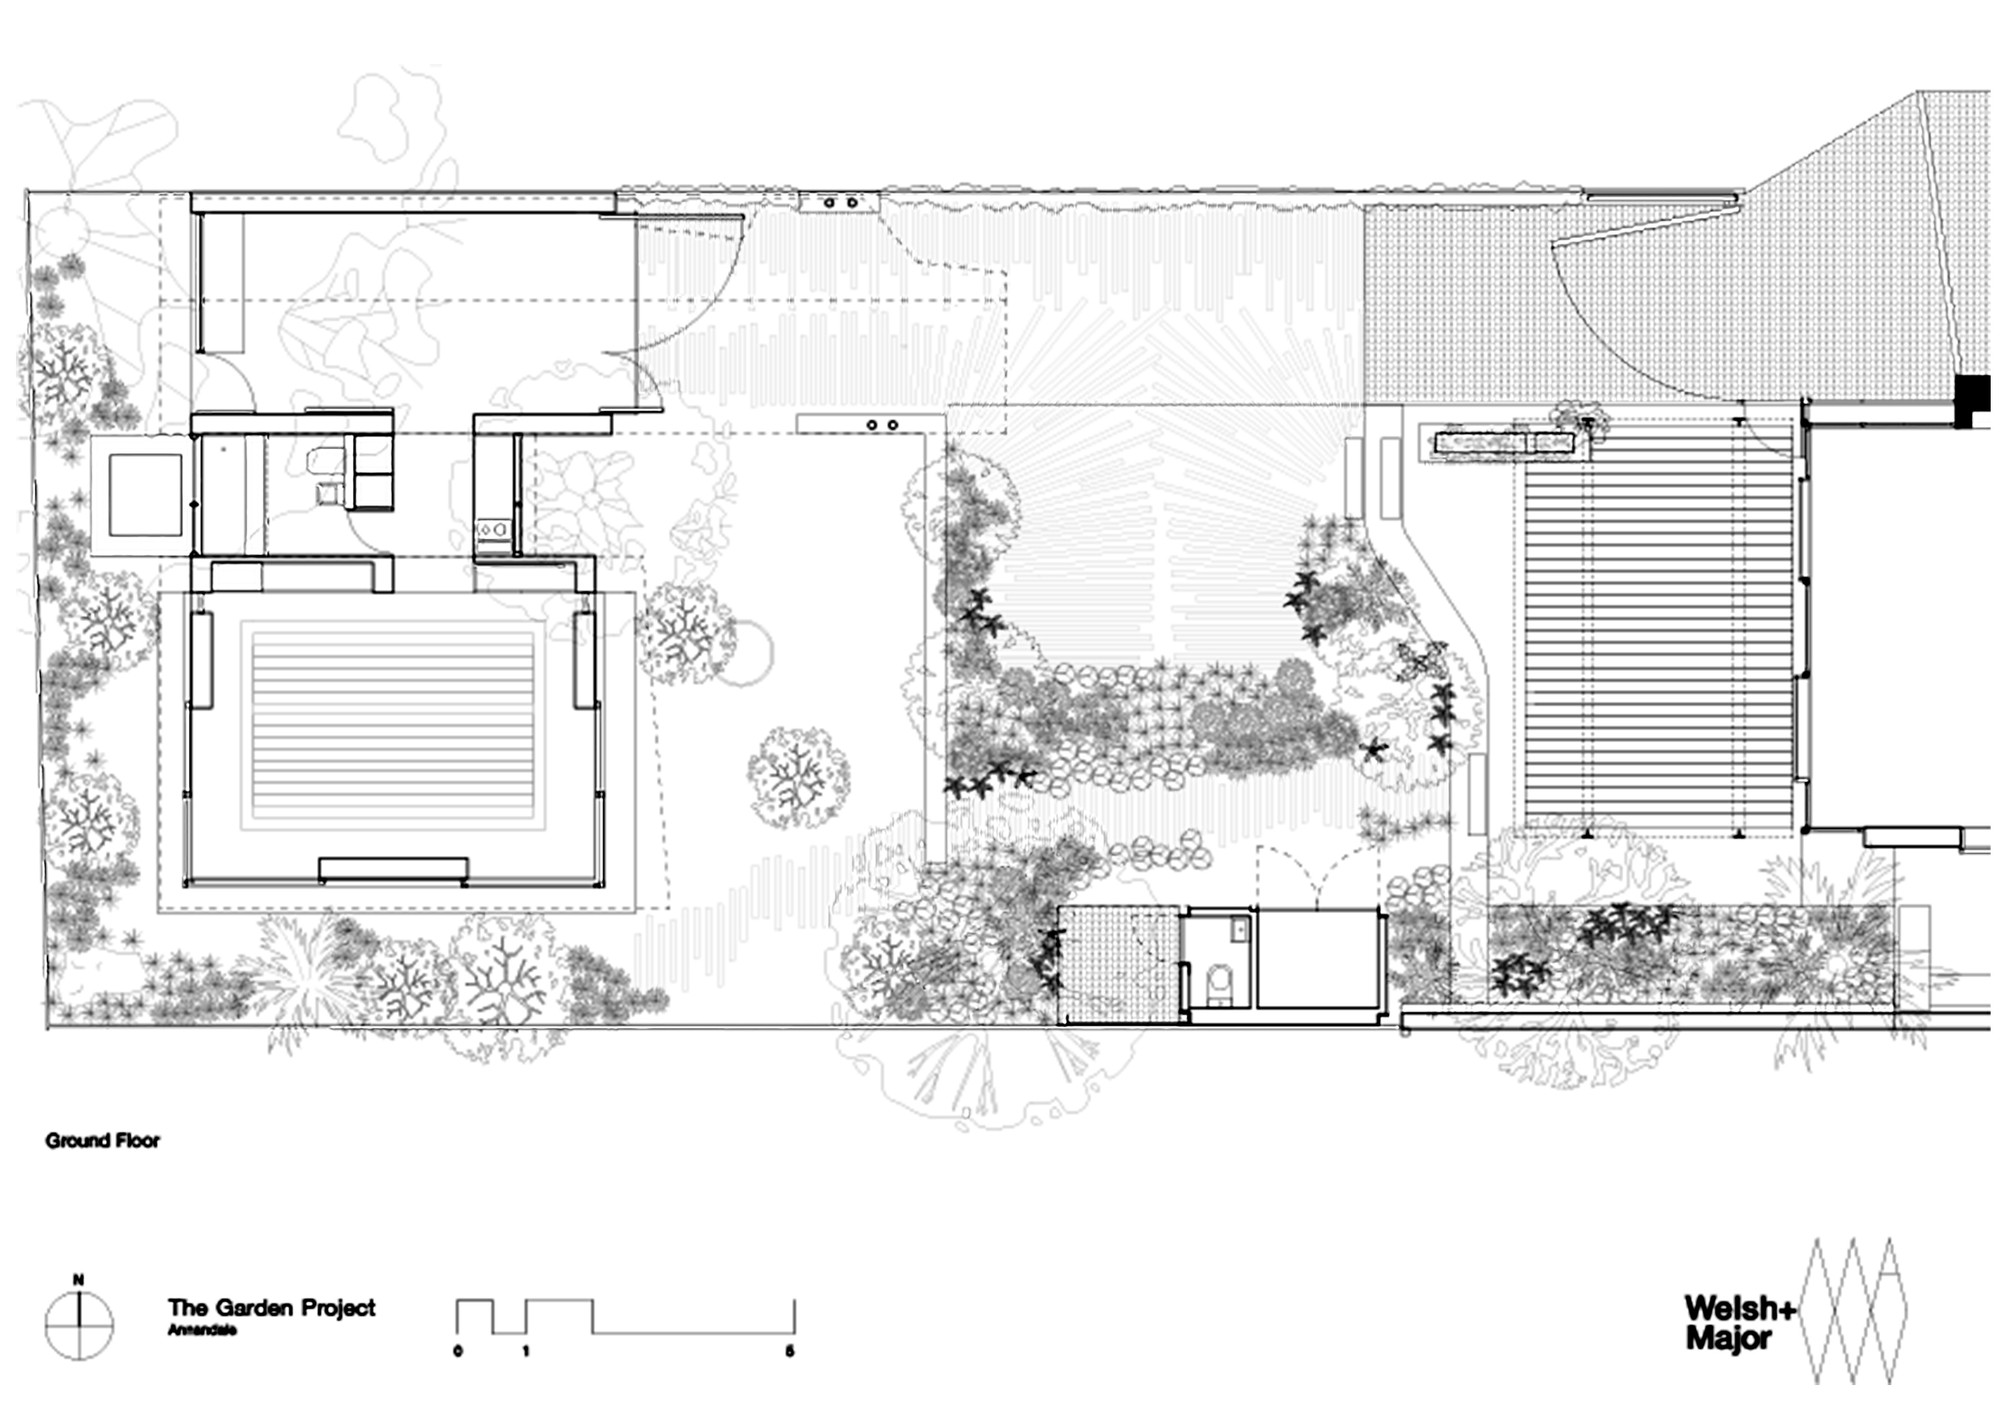 The garden room welsh major archdaily for Garden floor design